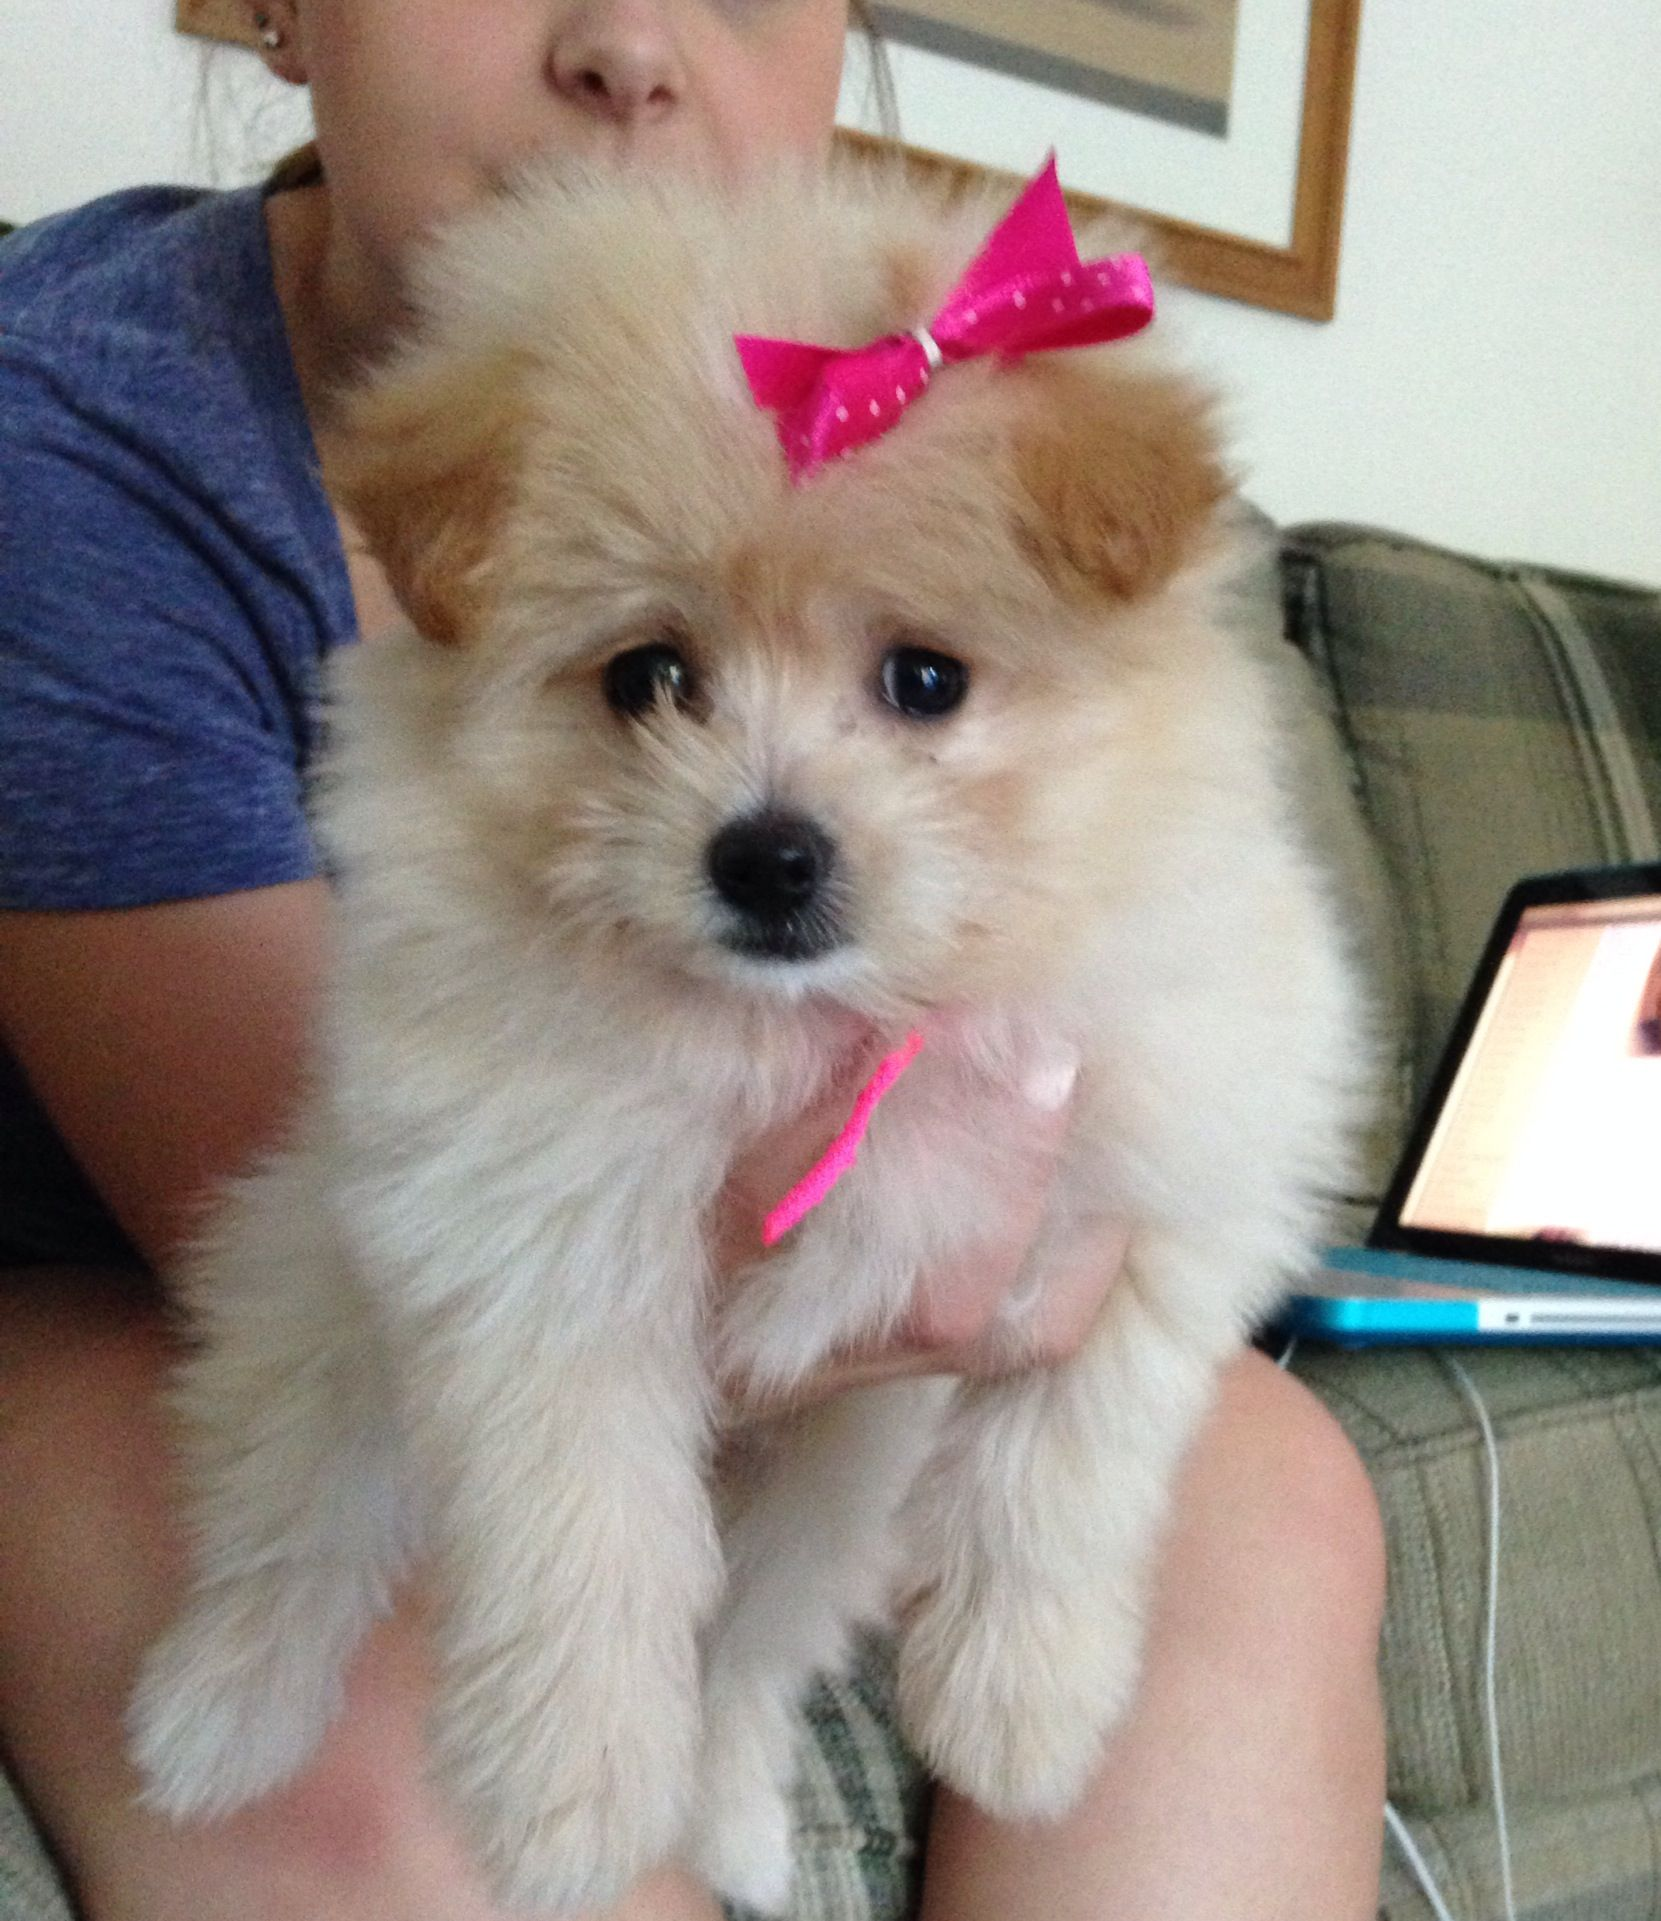 My 9 Week Old Pomapoo Puppy Pomeranian And Poodle Mix Love